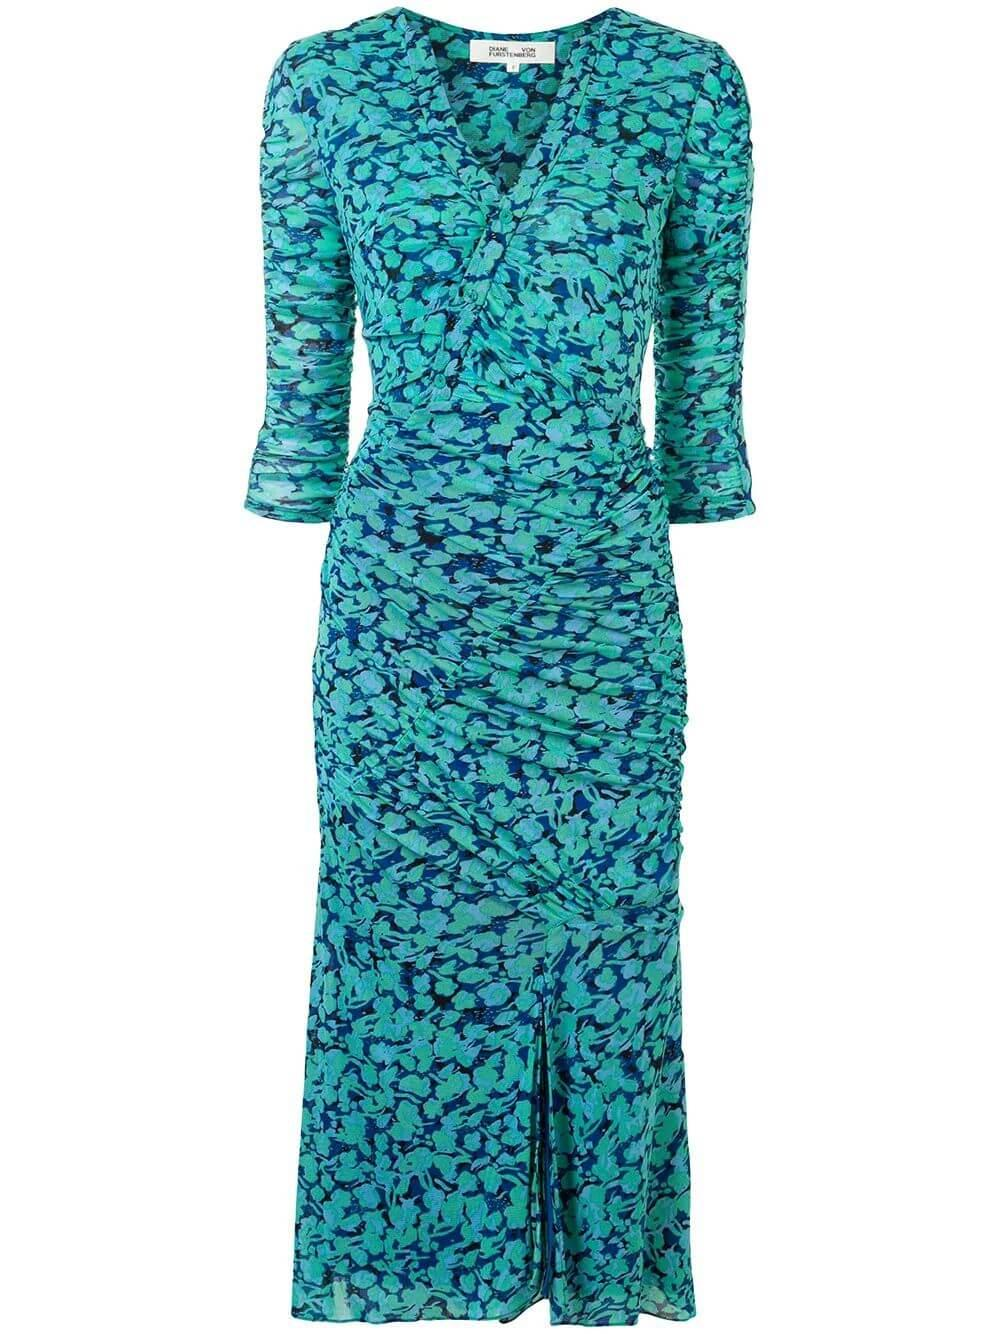 Briella Dress Item # 11997DVF